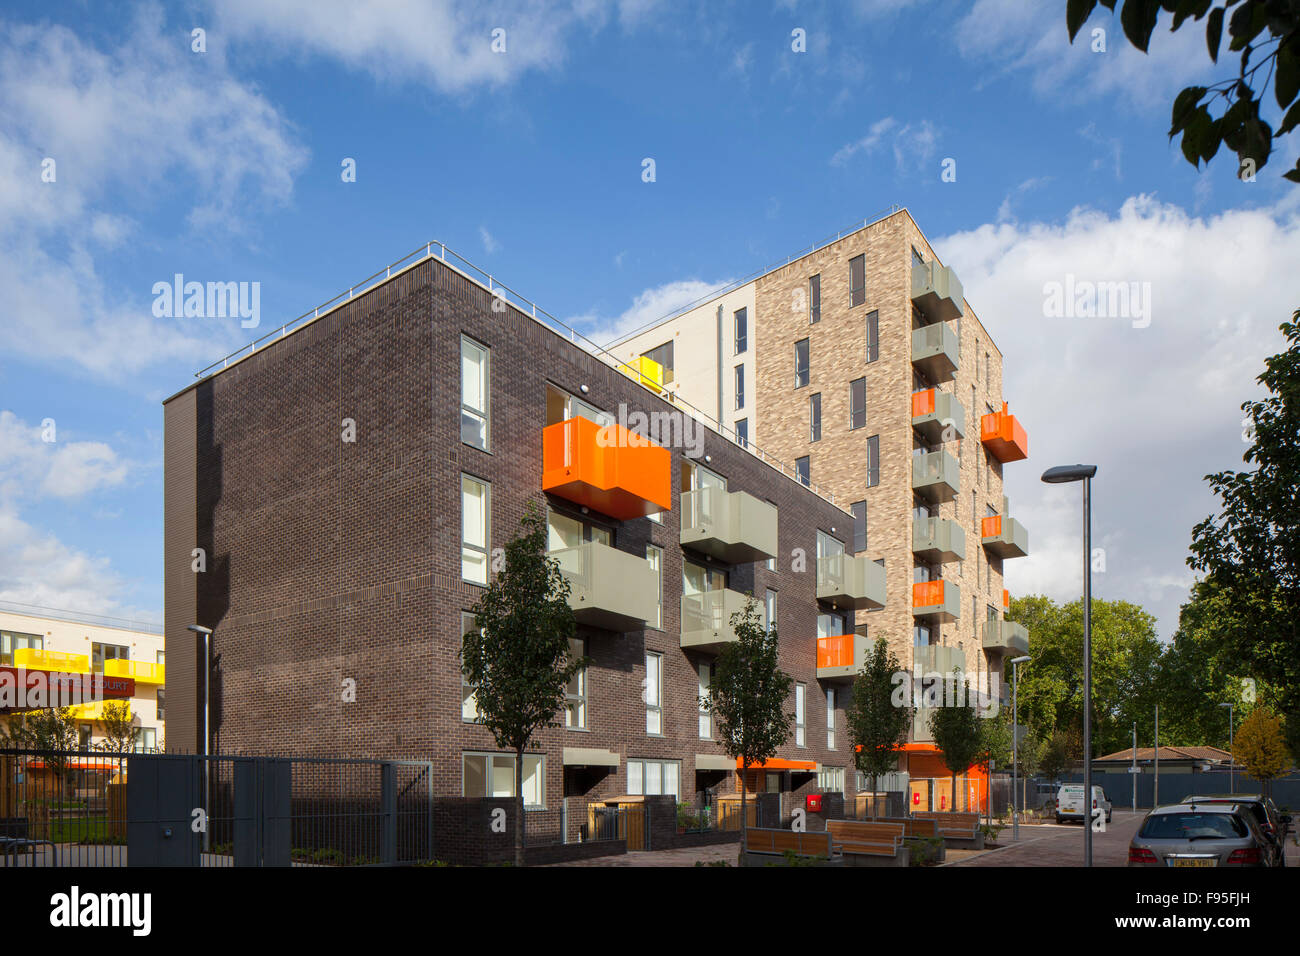 Ocean Estate, Stepney Green. The Ocean Estate project is a new build development of 462 mixed tenure housing, made Stock Photo